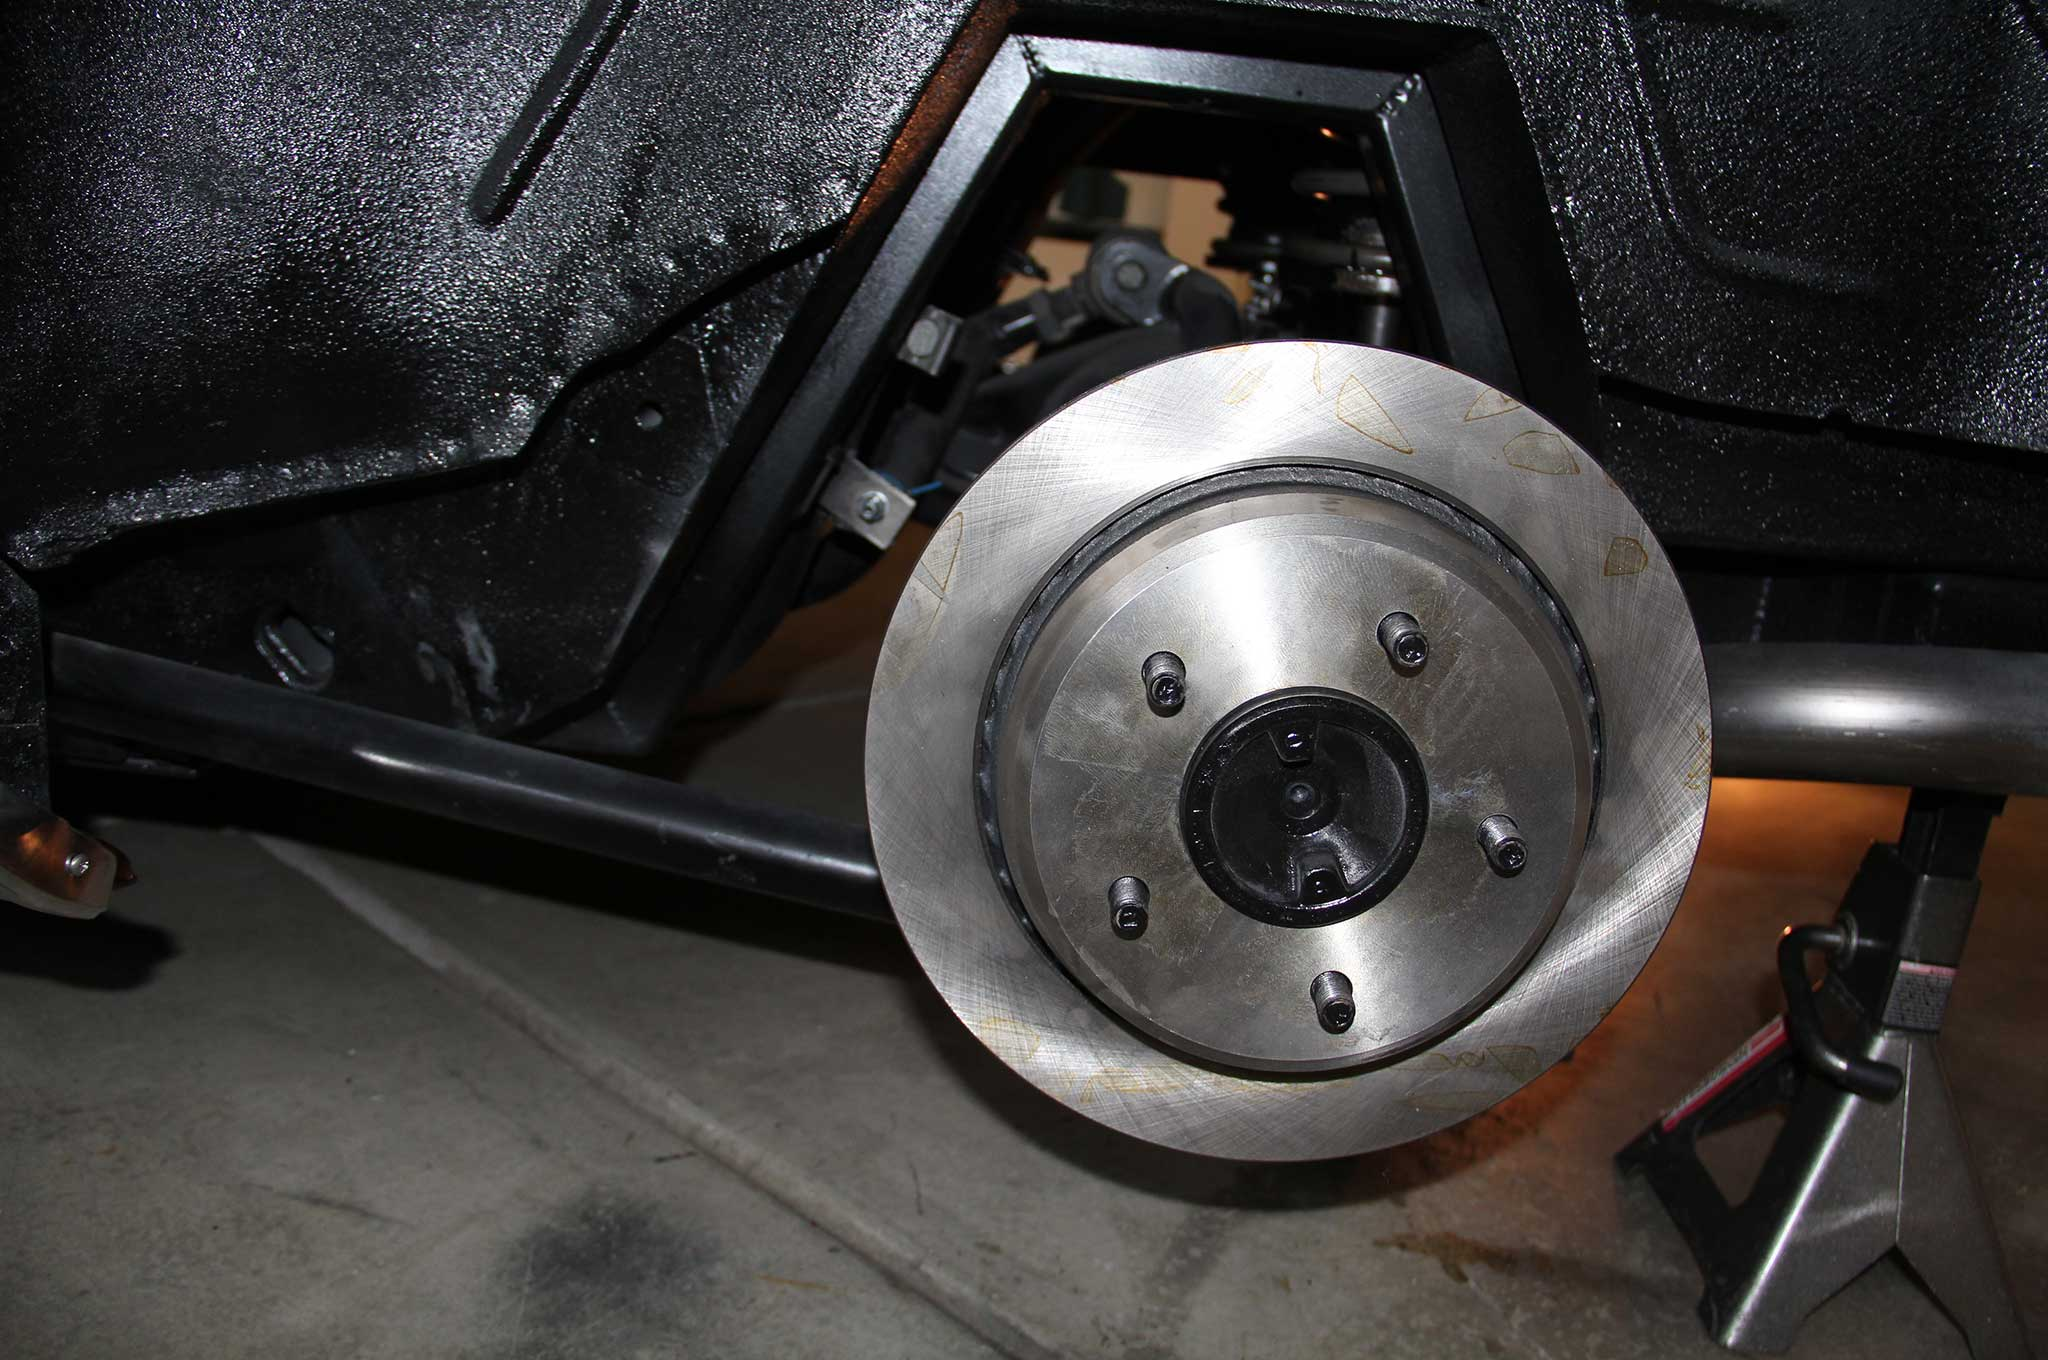 Px Ford Model T D Transmission furthermore Pic furthermore Dodge Charger Interior together with Rocky Mountain Brakes together with Northamerican F Sabre. on car drum brake system